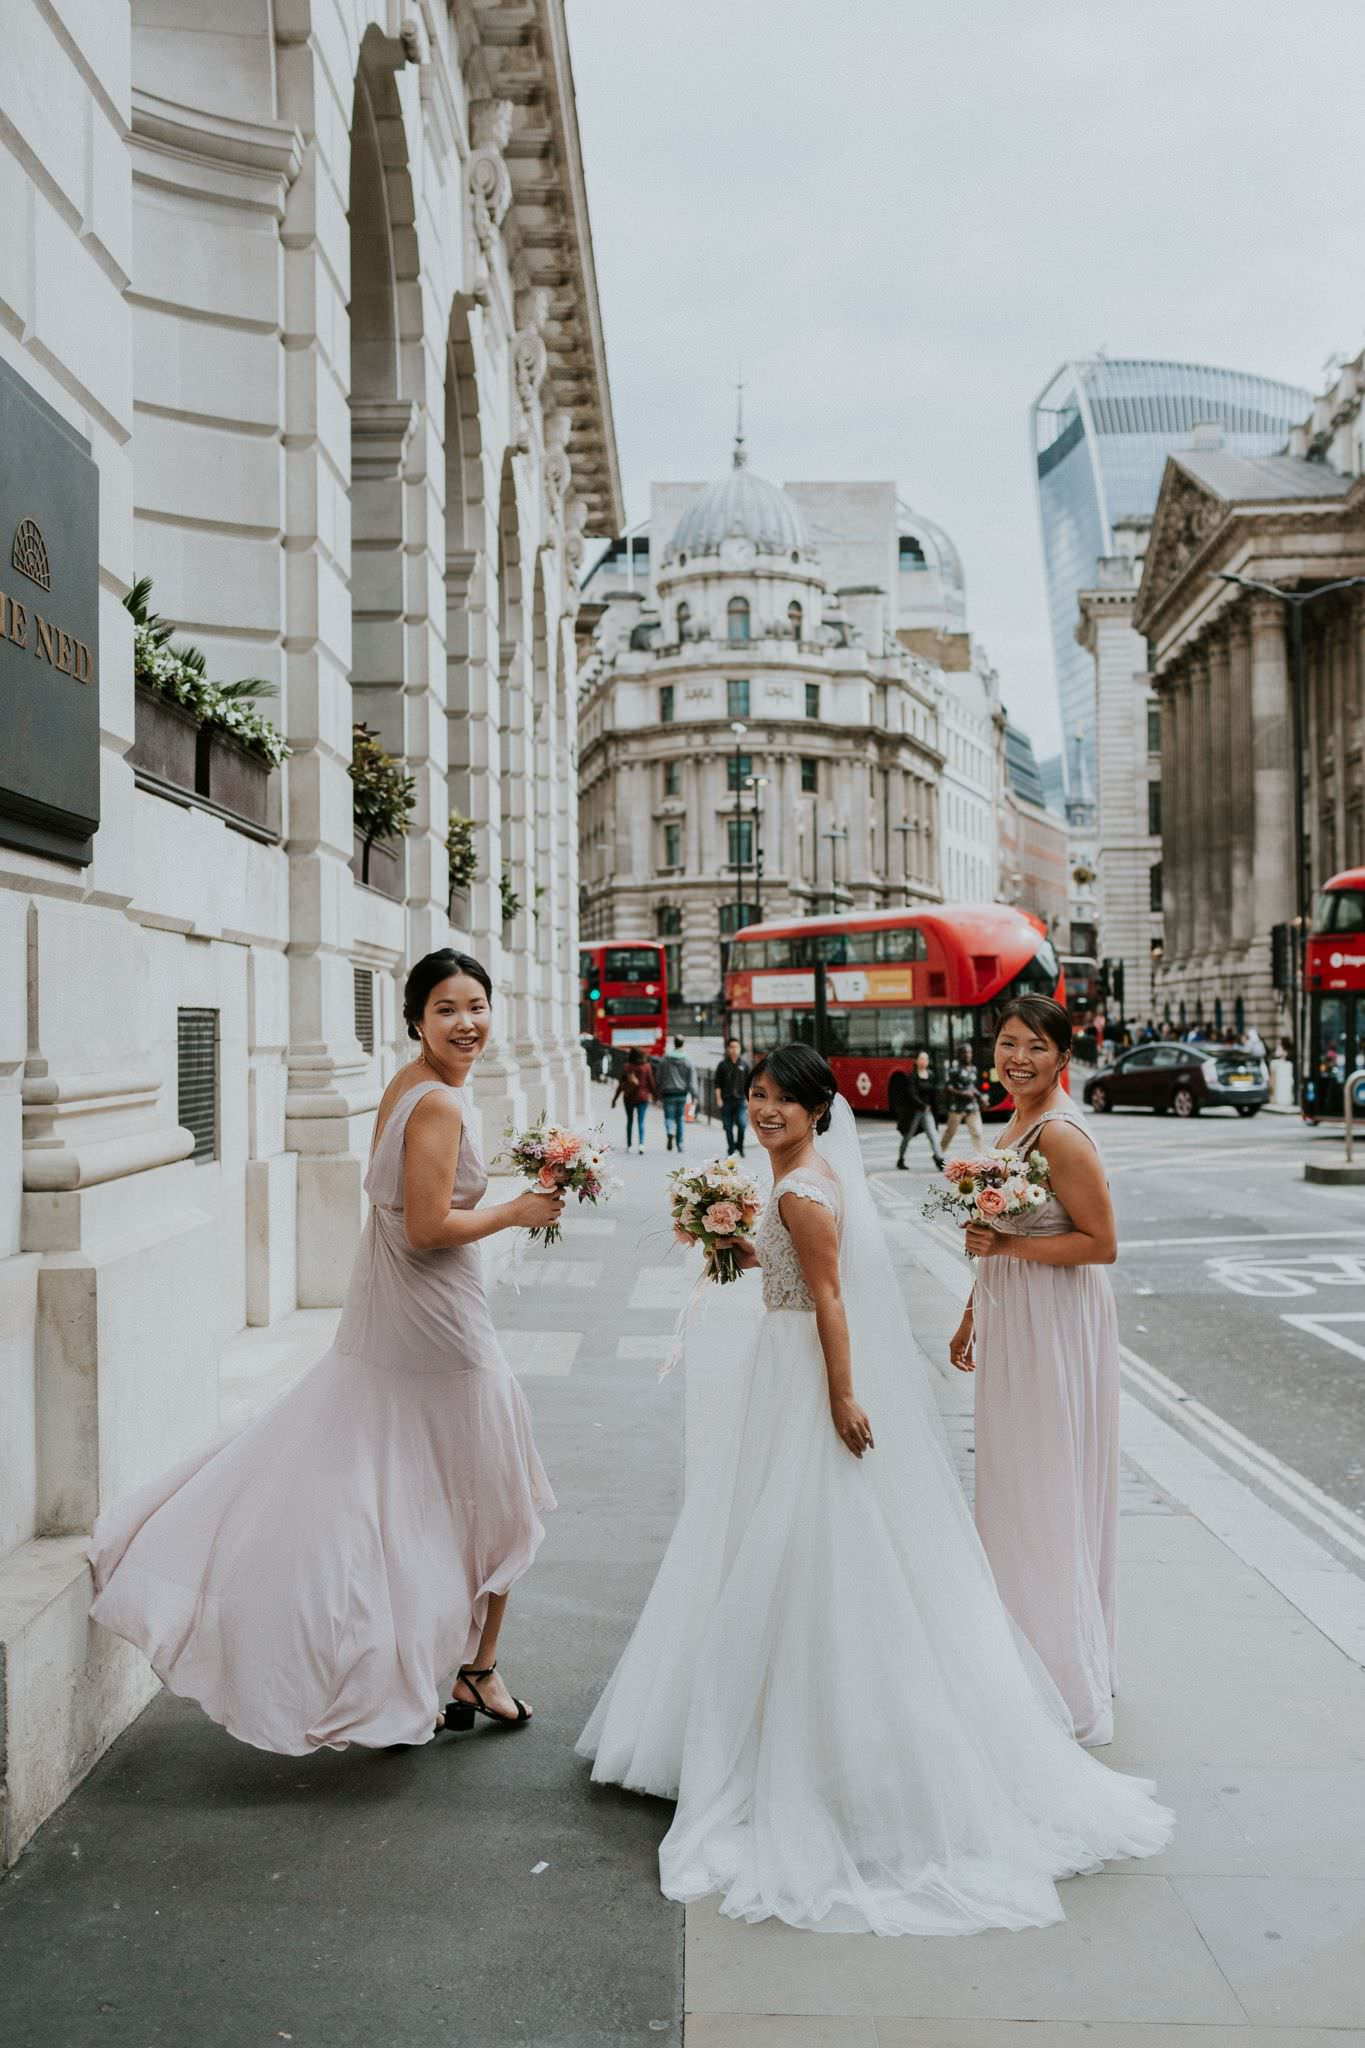 The Kitty Hawk Wedding Venue London